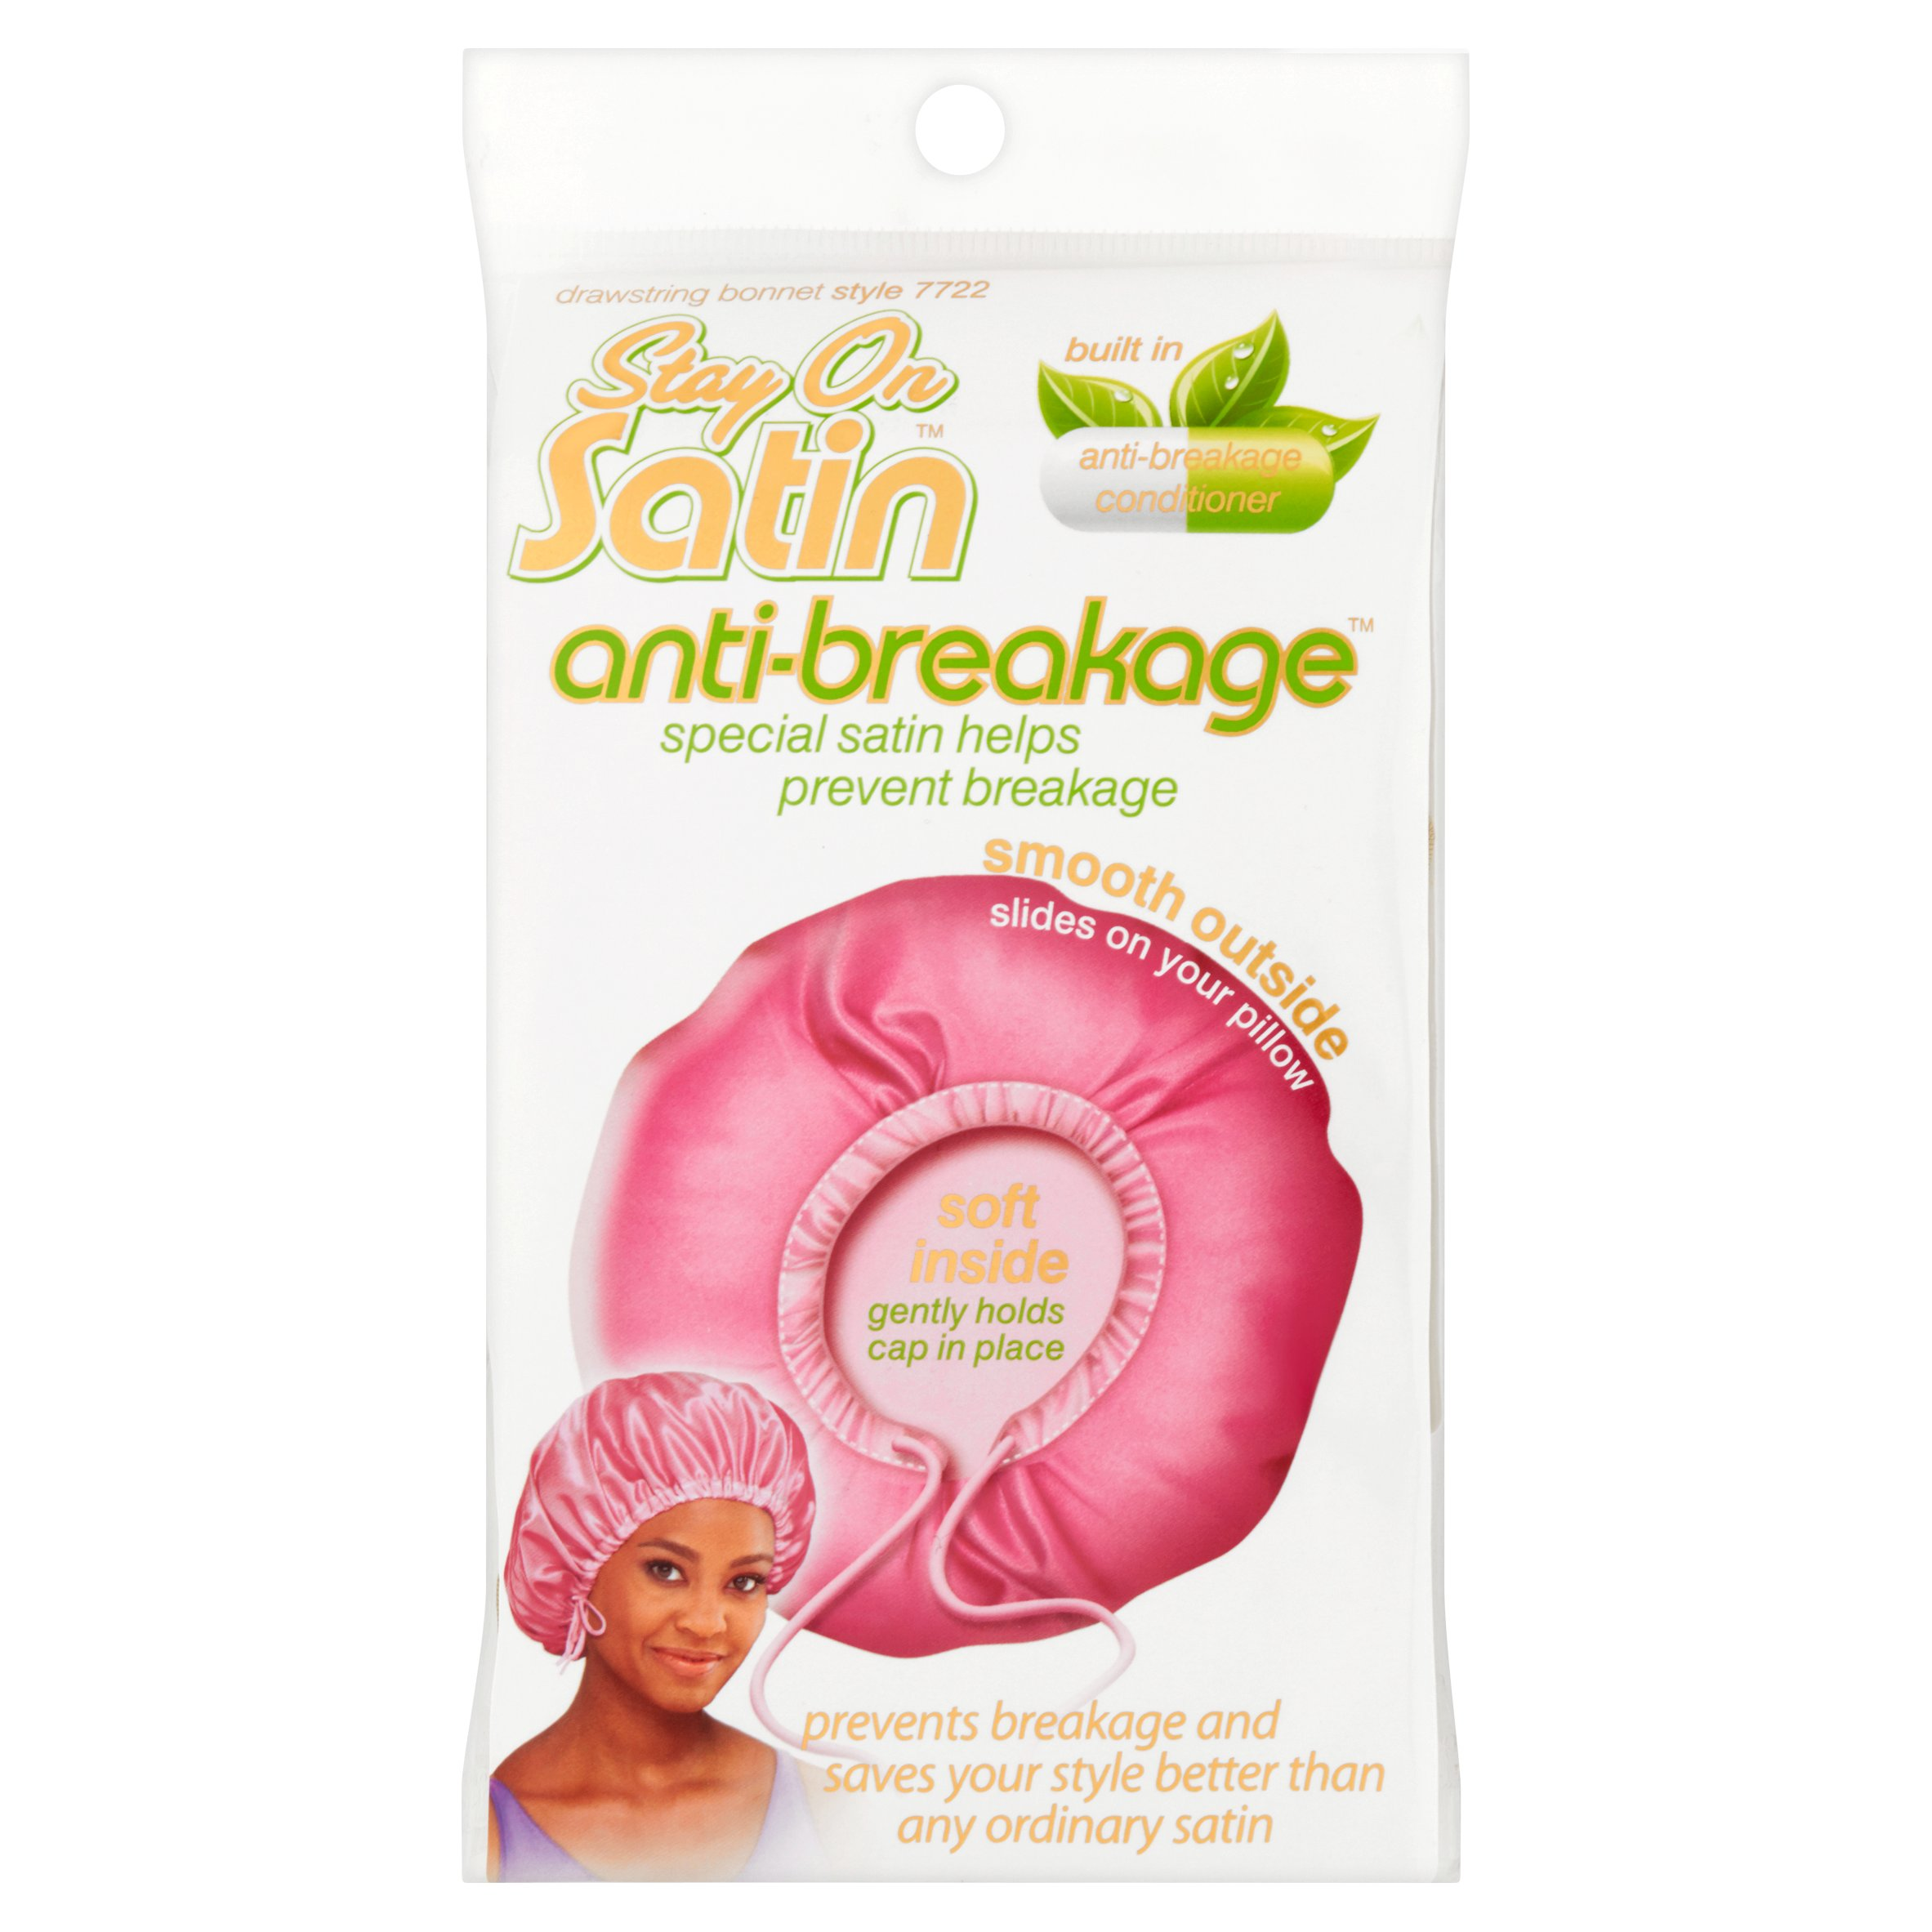 Stay on Satin Anti-Breakage Drawstring Bonnet Style 7722